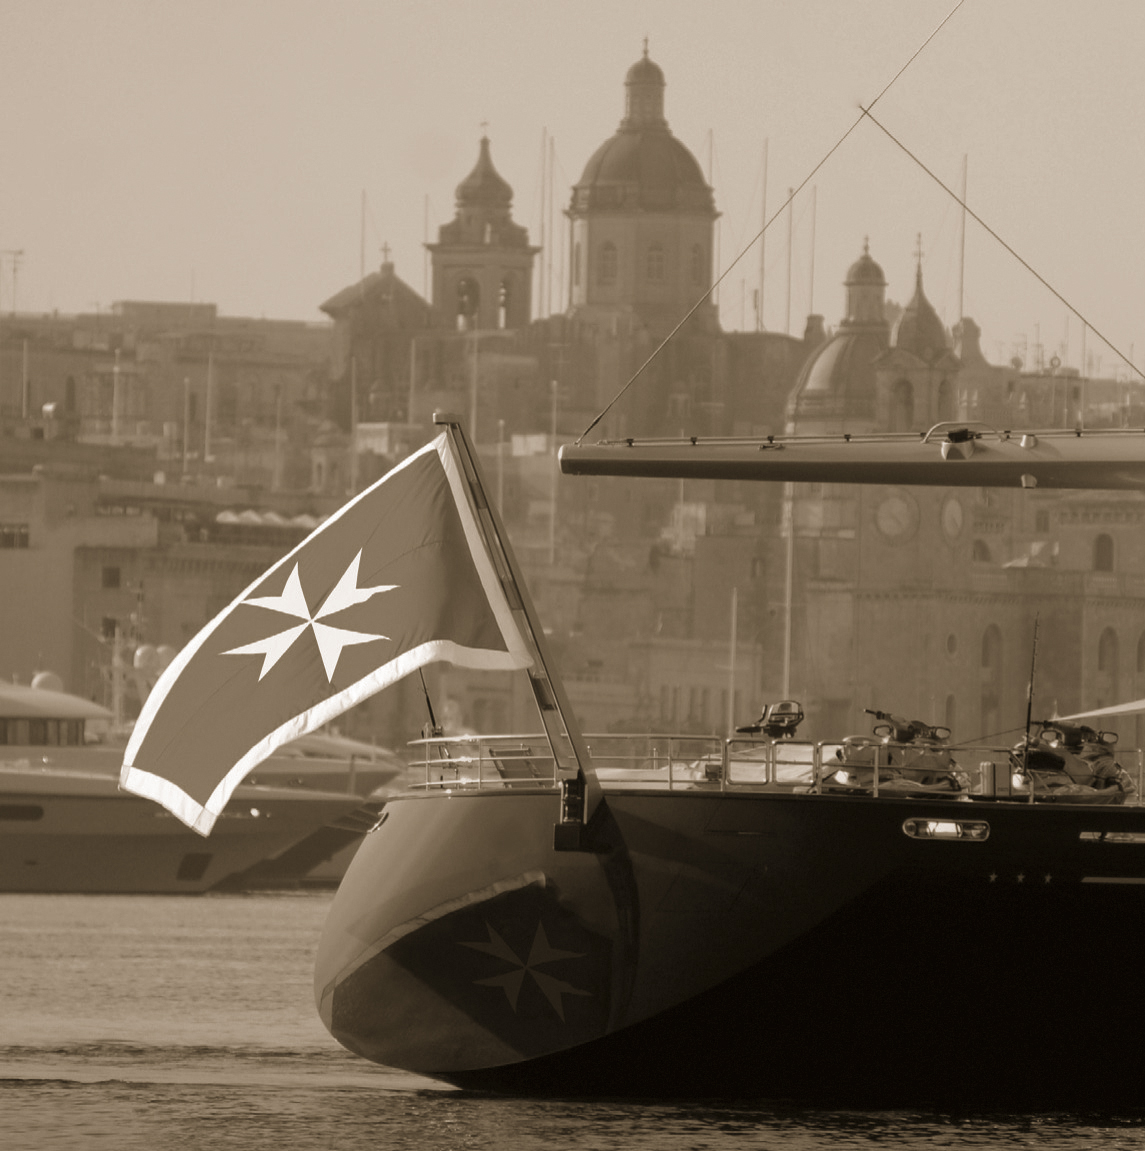 Ship & Yacht Registration Malta Europe